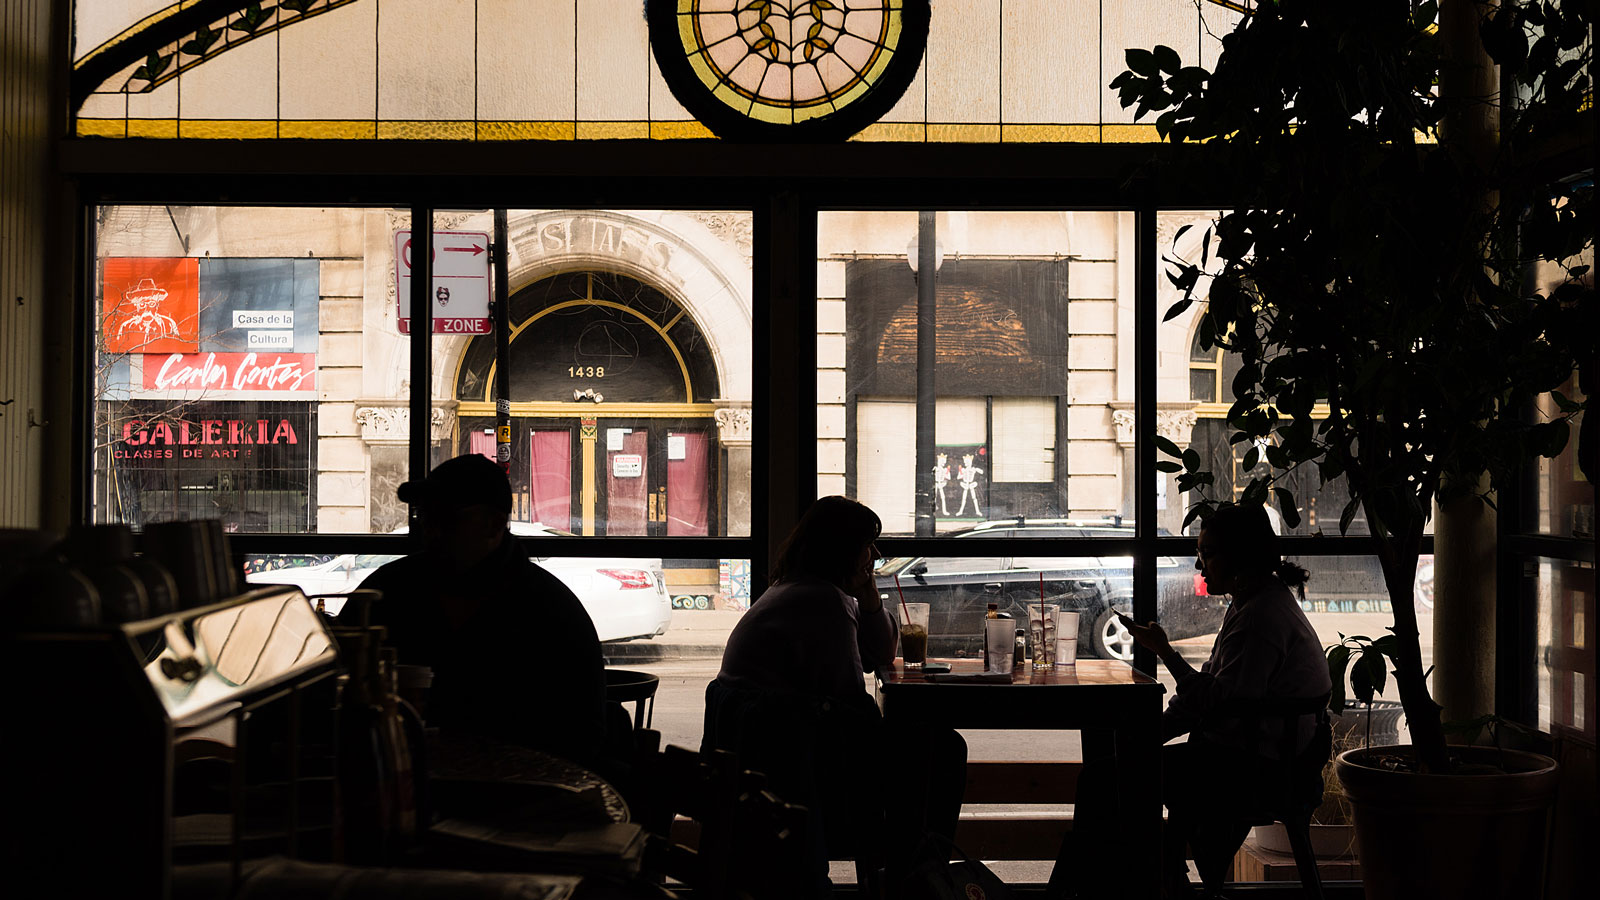 Patrons enjoy food and drinks at Café Jumping Bean, a thriving small business in Pilsen